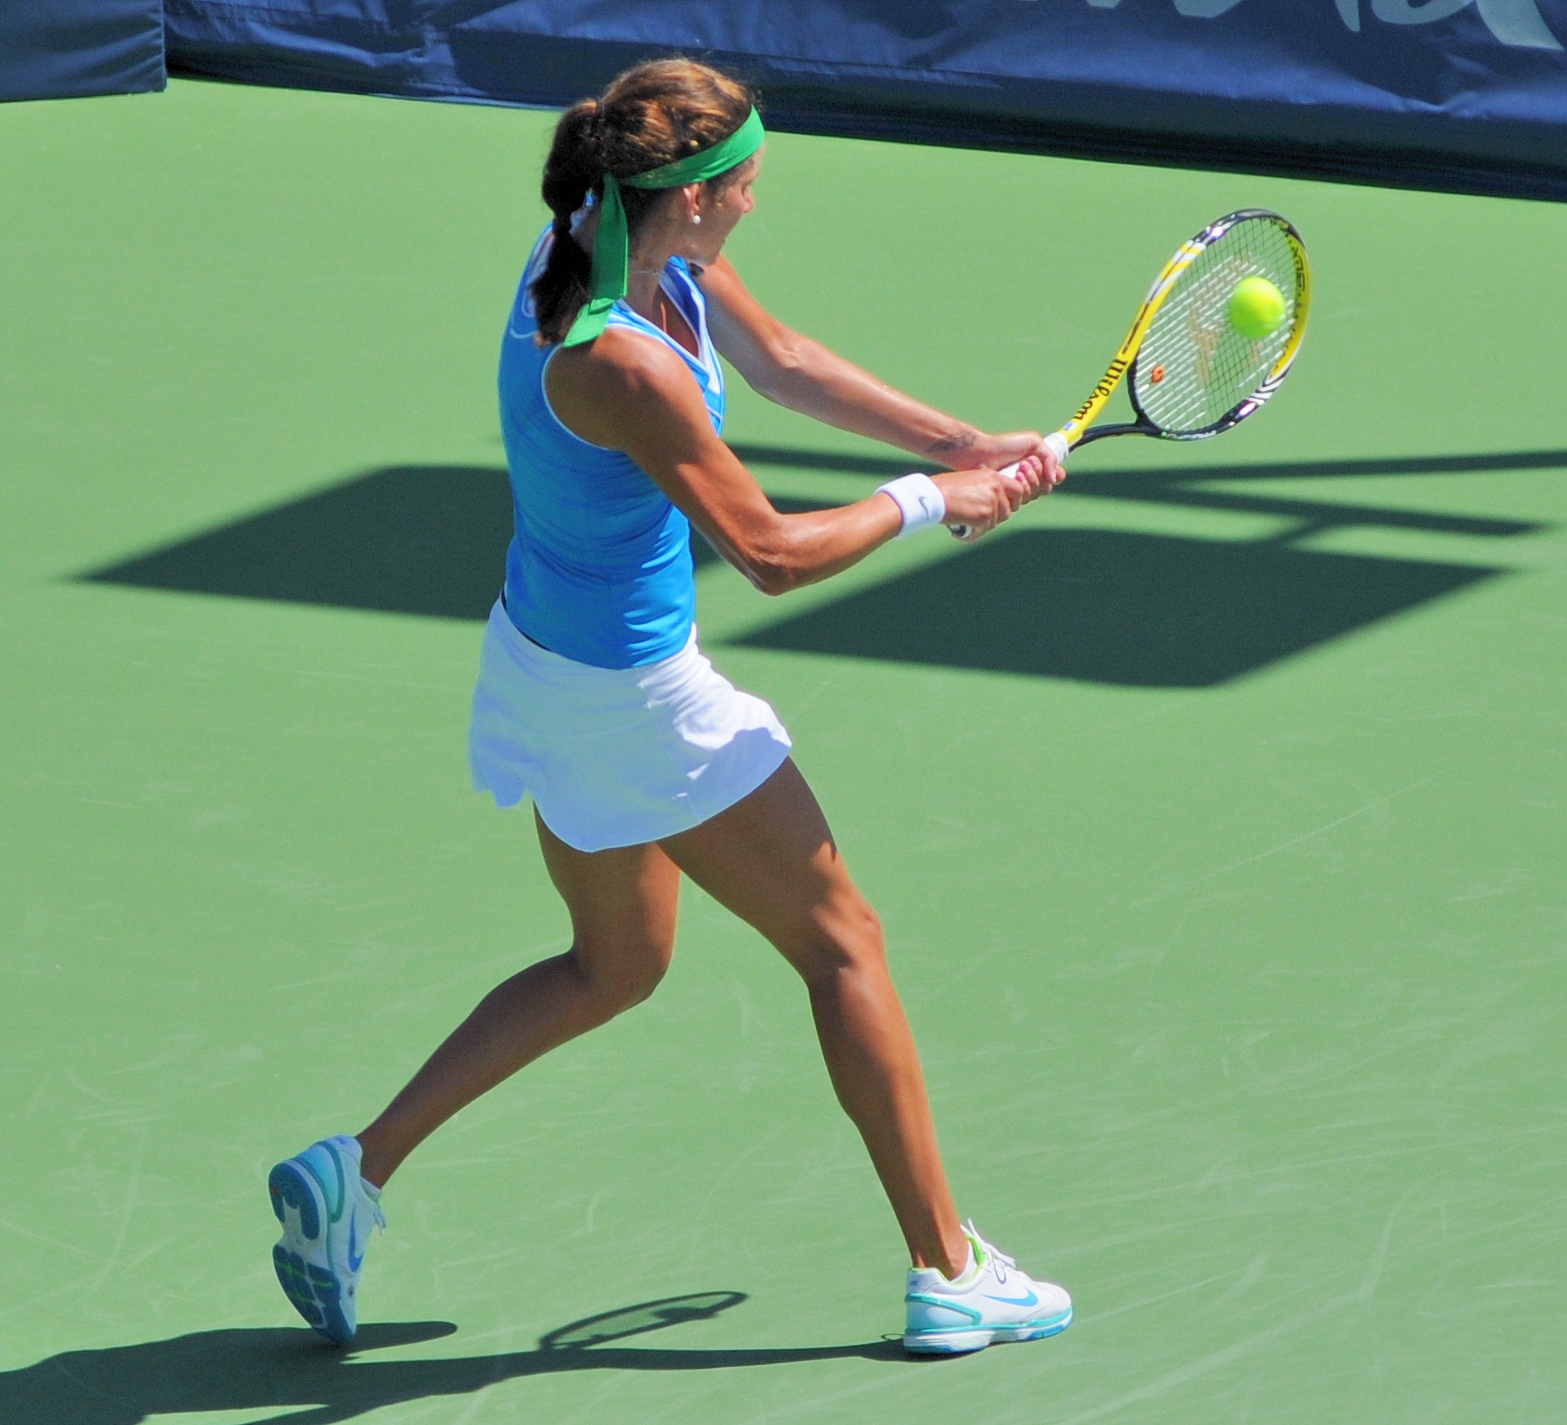 a scientific analysis of the backhand stroke in tennis The science of tennis technique is explained in this guide that practically applies the lessons learned from studying the forces and motions of tennis strokes.